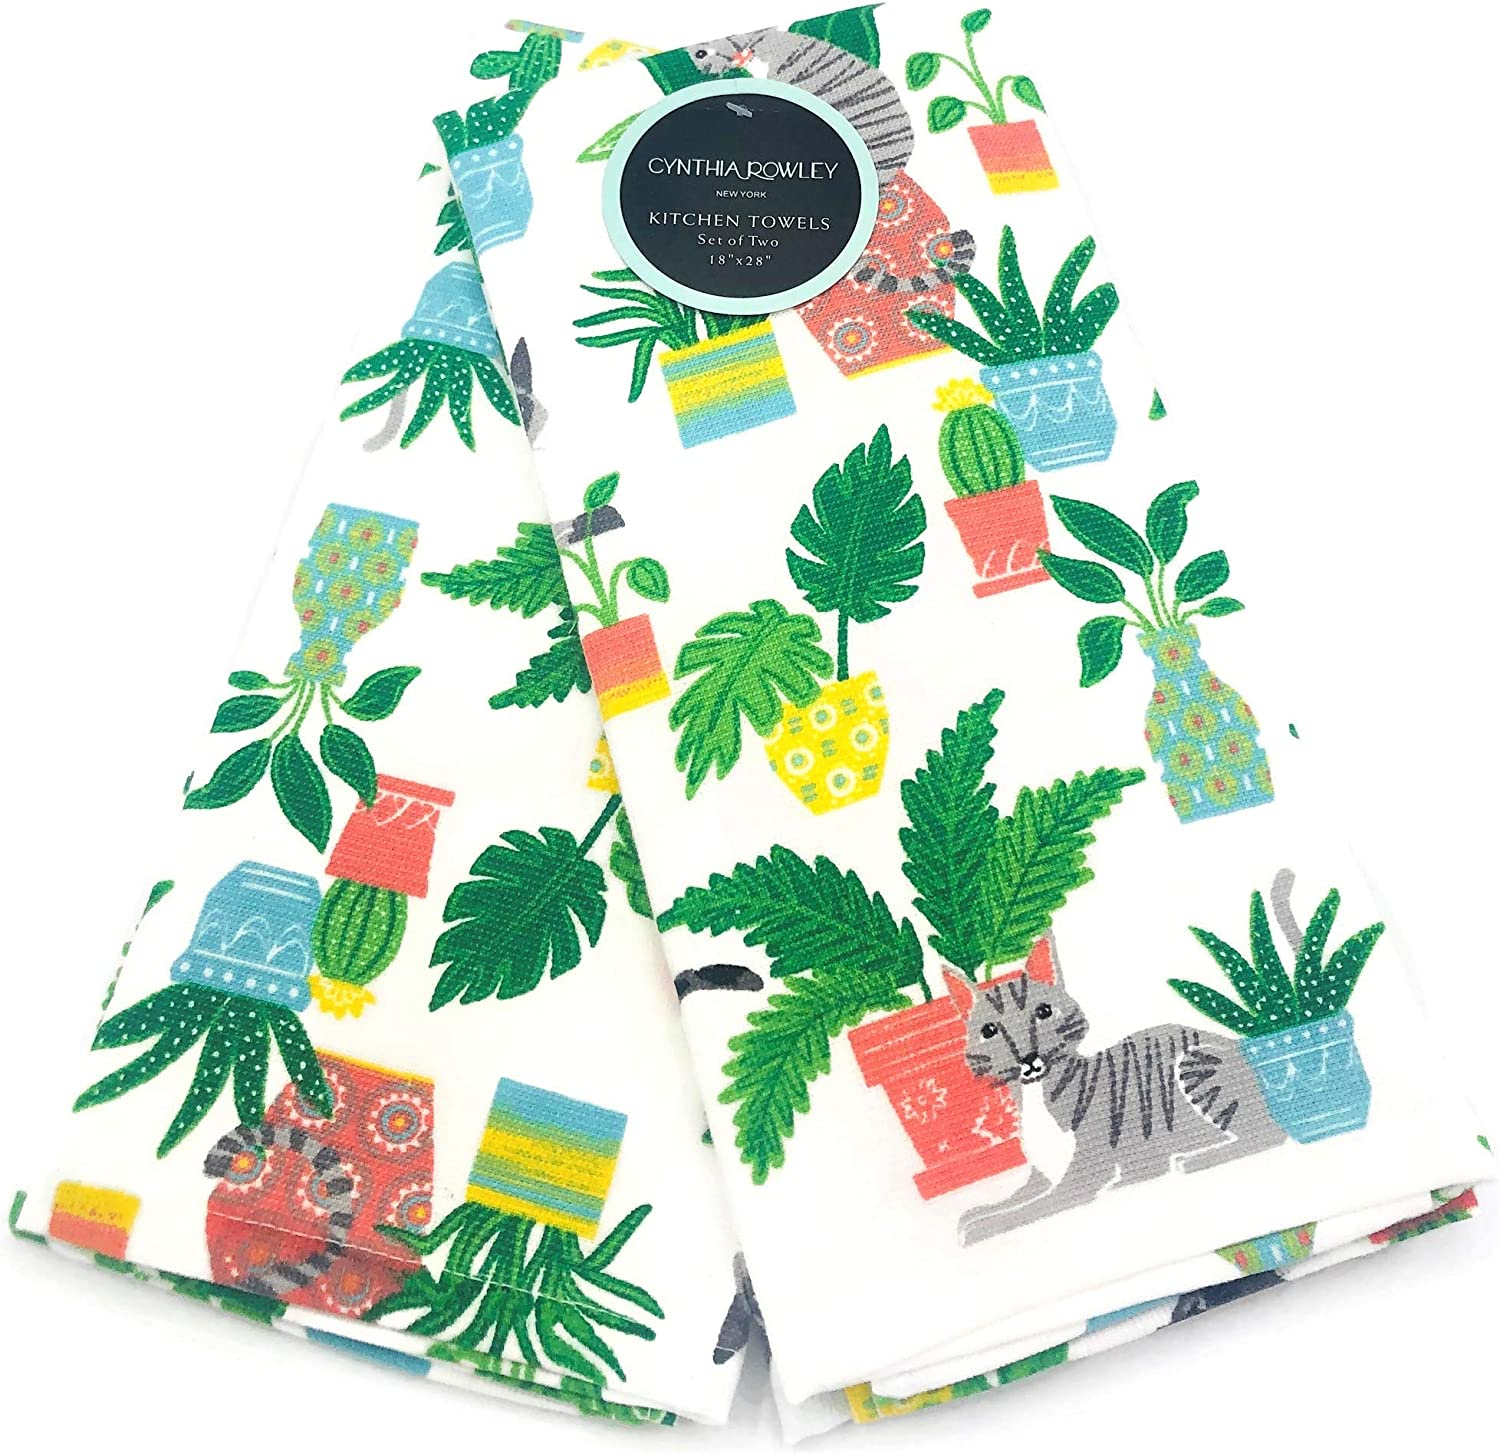 Baking Cooking Set of 2 Soft Absorbent Cotton Kitchen Towels Dishtowels for Kitchen Decor Cynthia Rowley Green House Plants /& Cats Kitchen Towel Set Cleaning /& Drying